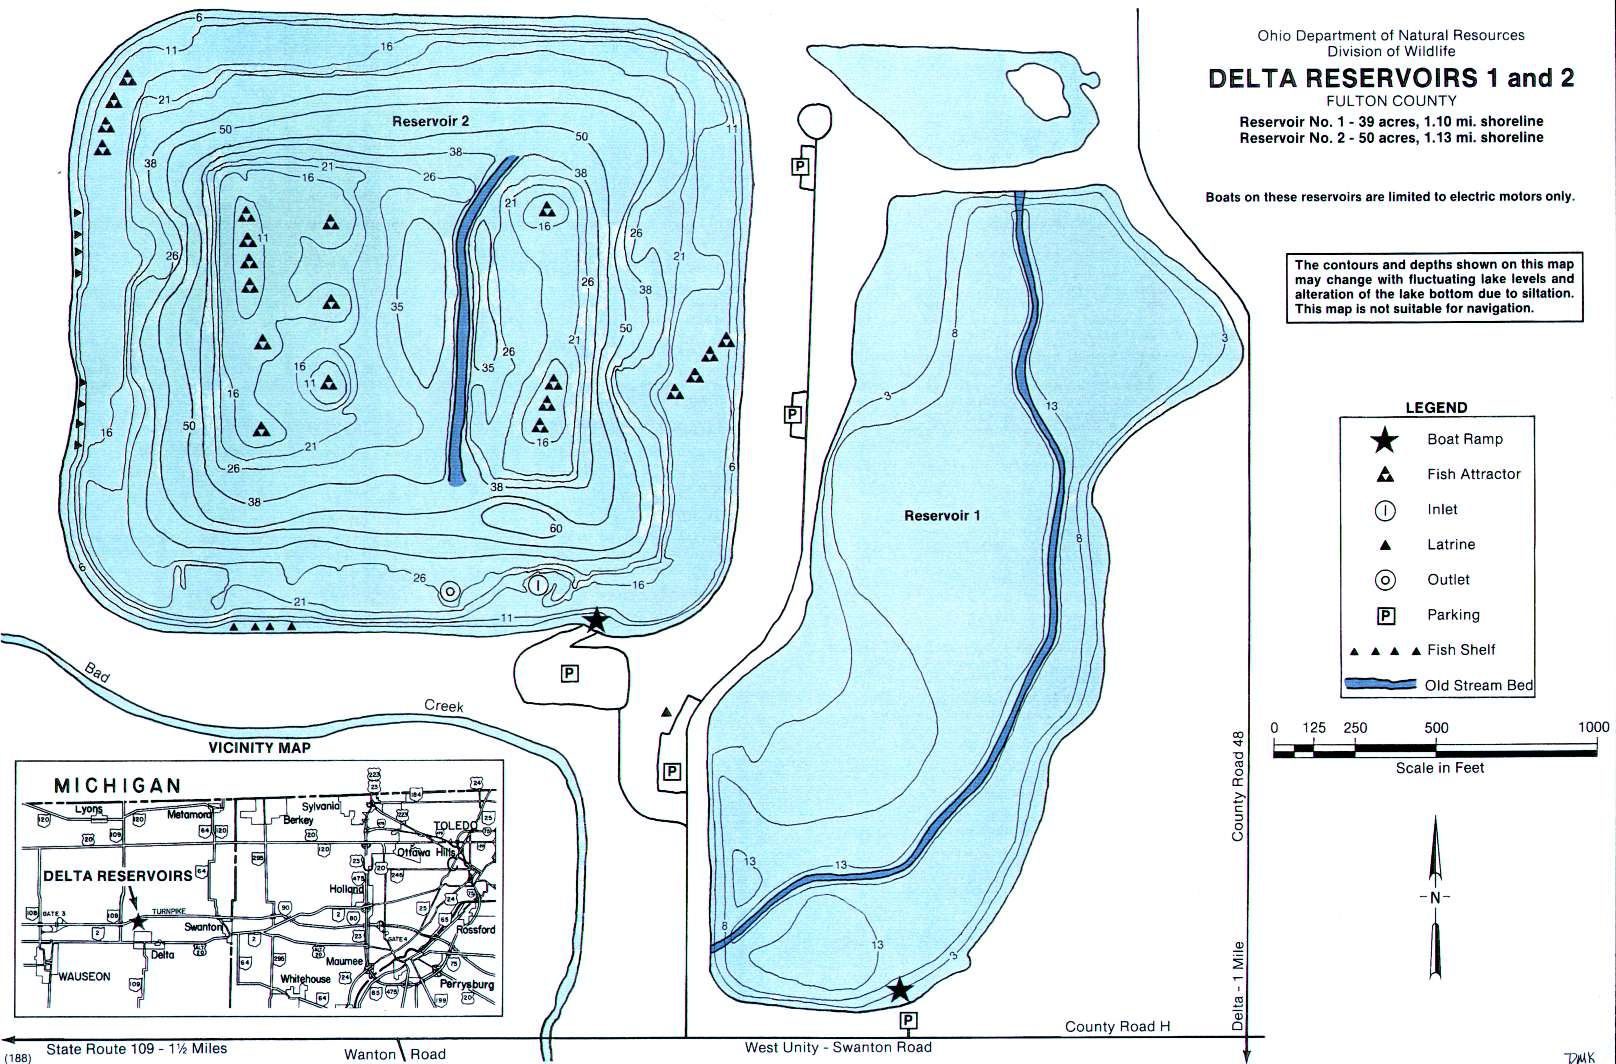 Delta Reservoirs 1-2 Fishing Map | Northwest Ohio Fishing